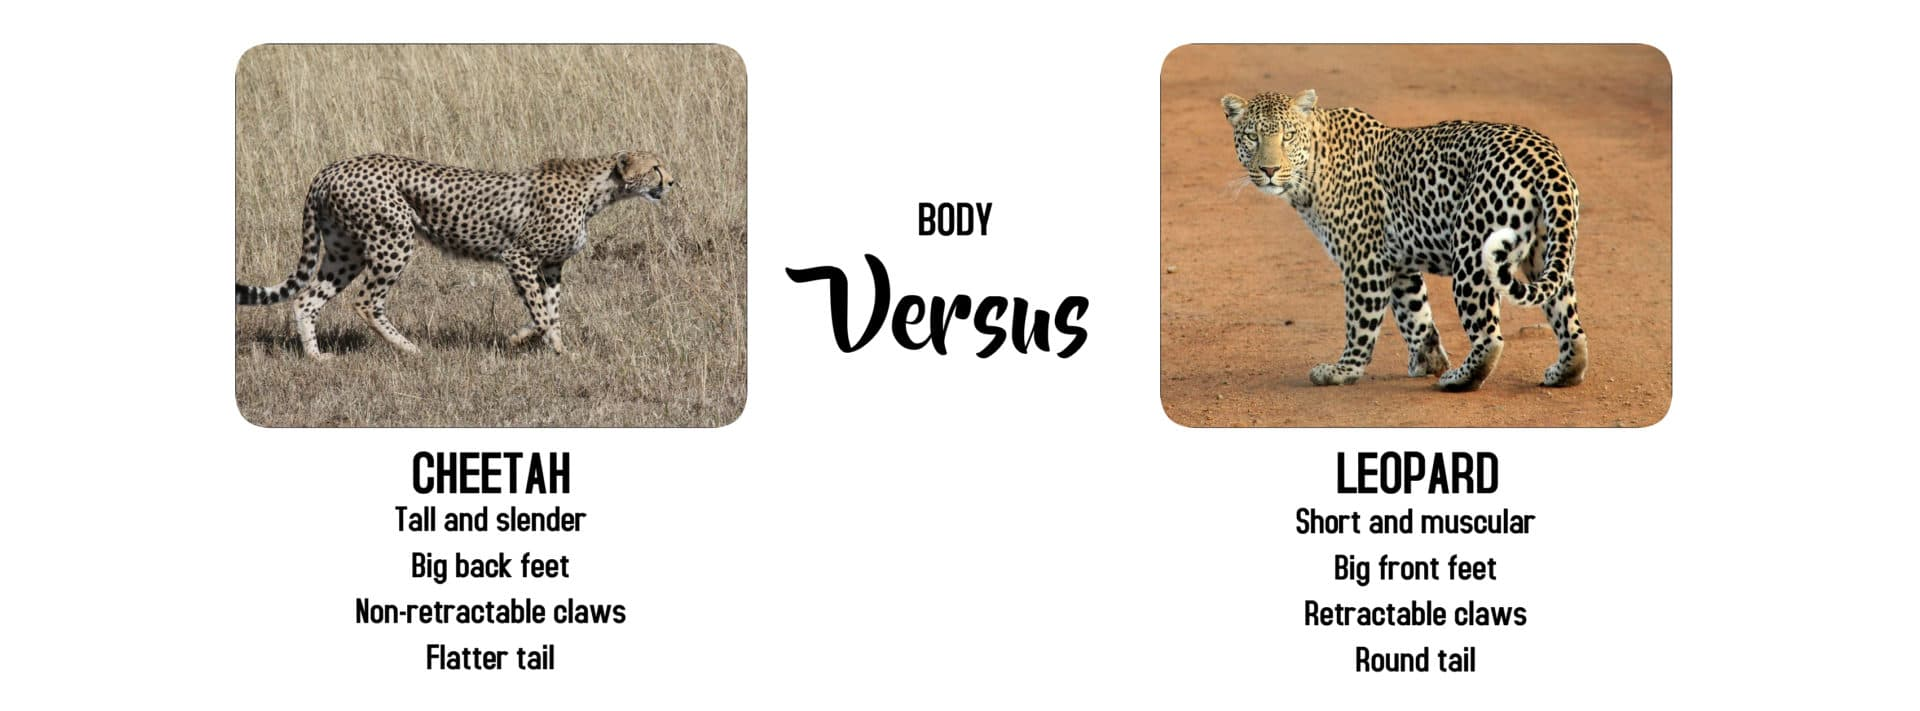 Cheetah versus Leopard body